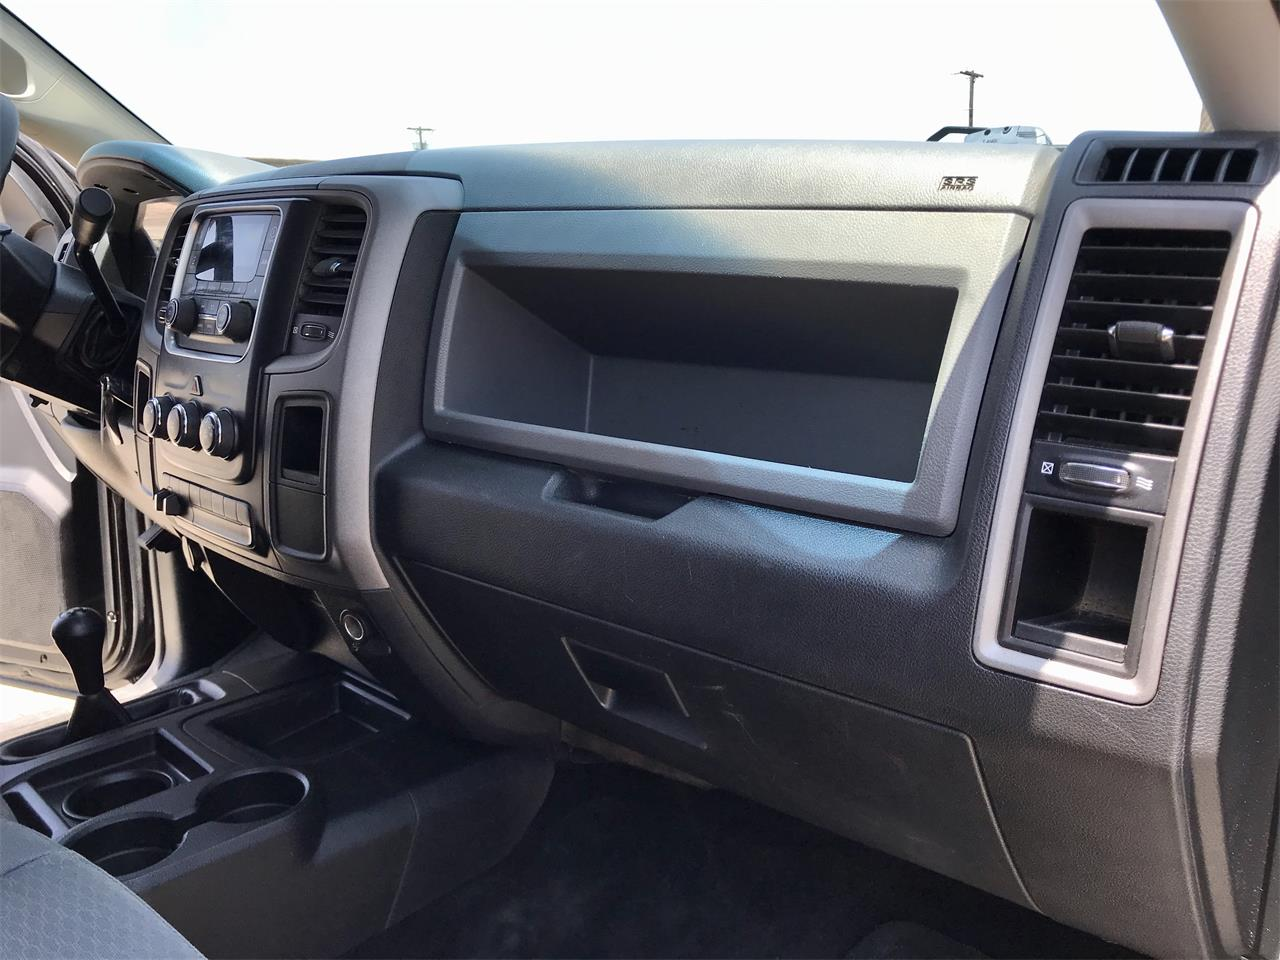 2015 Dodge Ram 2500 (CC-1352129) for sale in Sherman, Texas